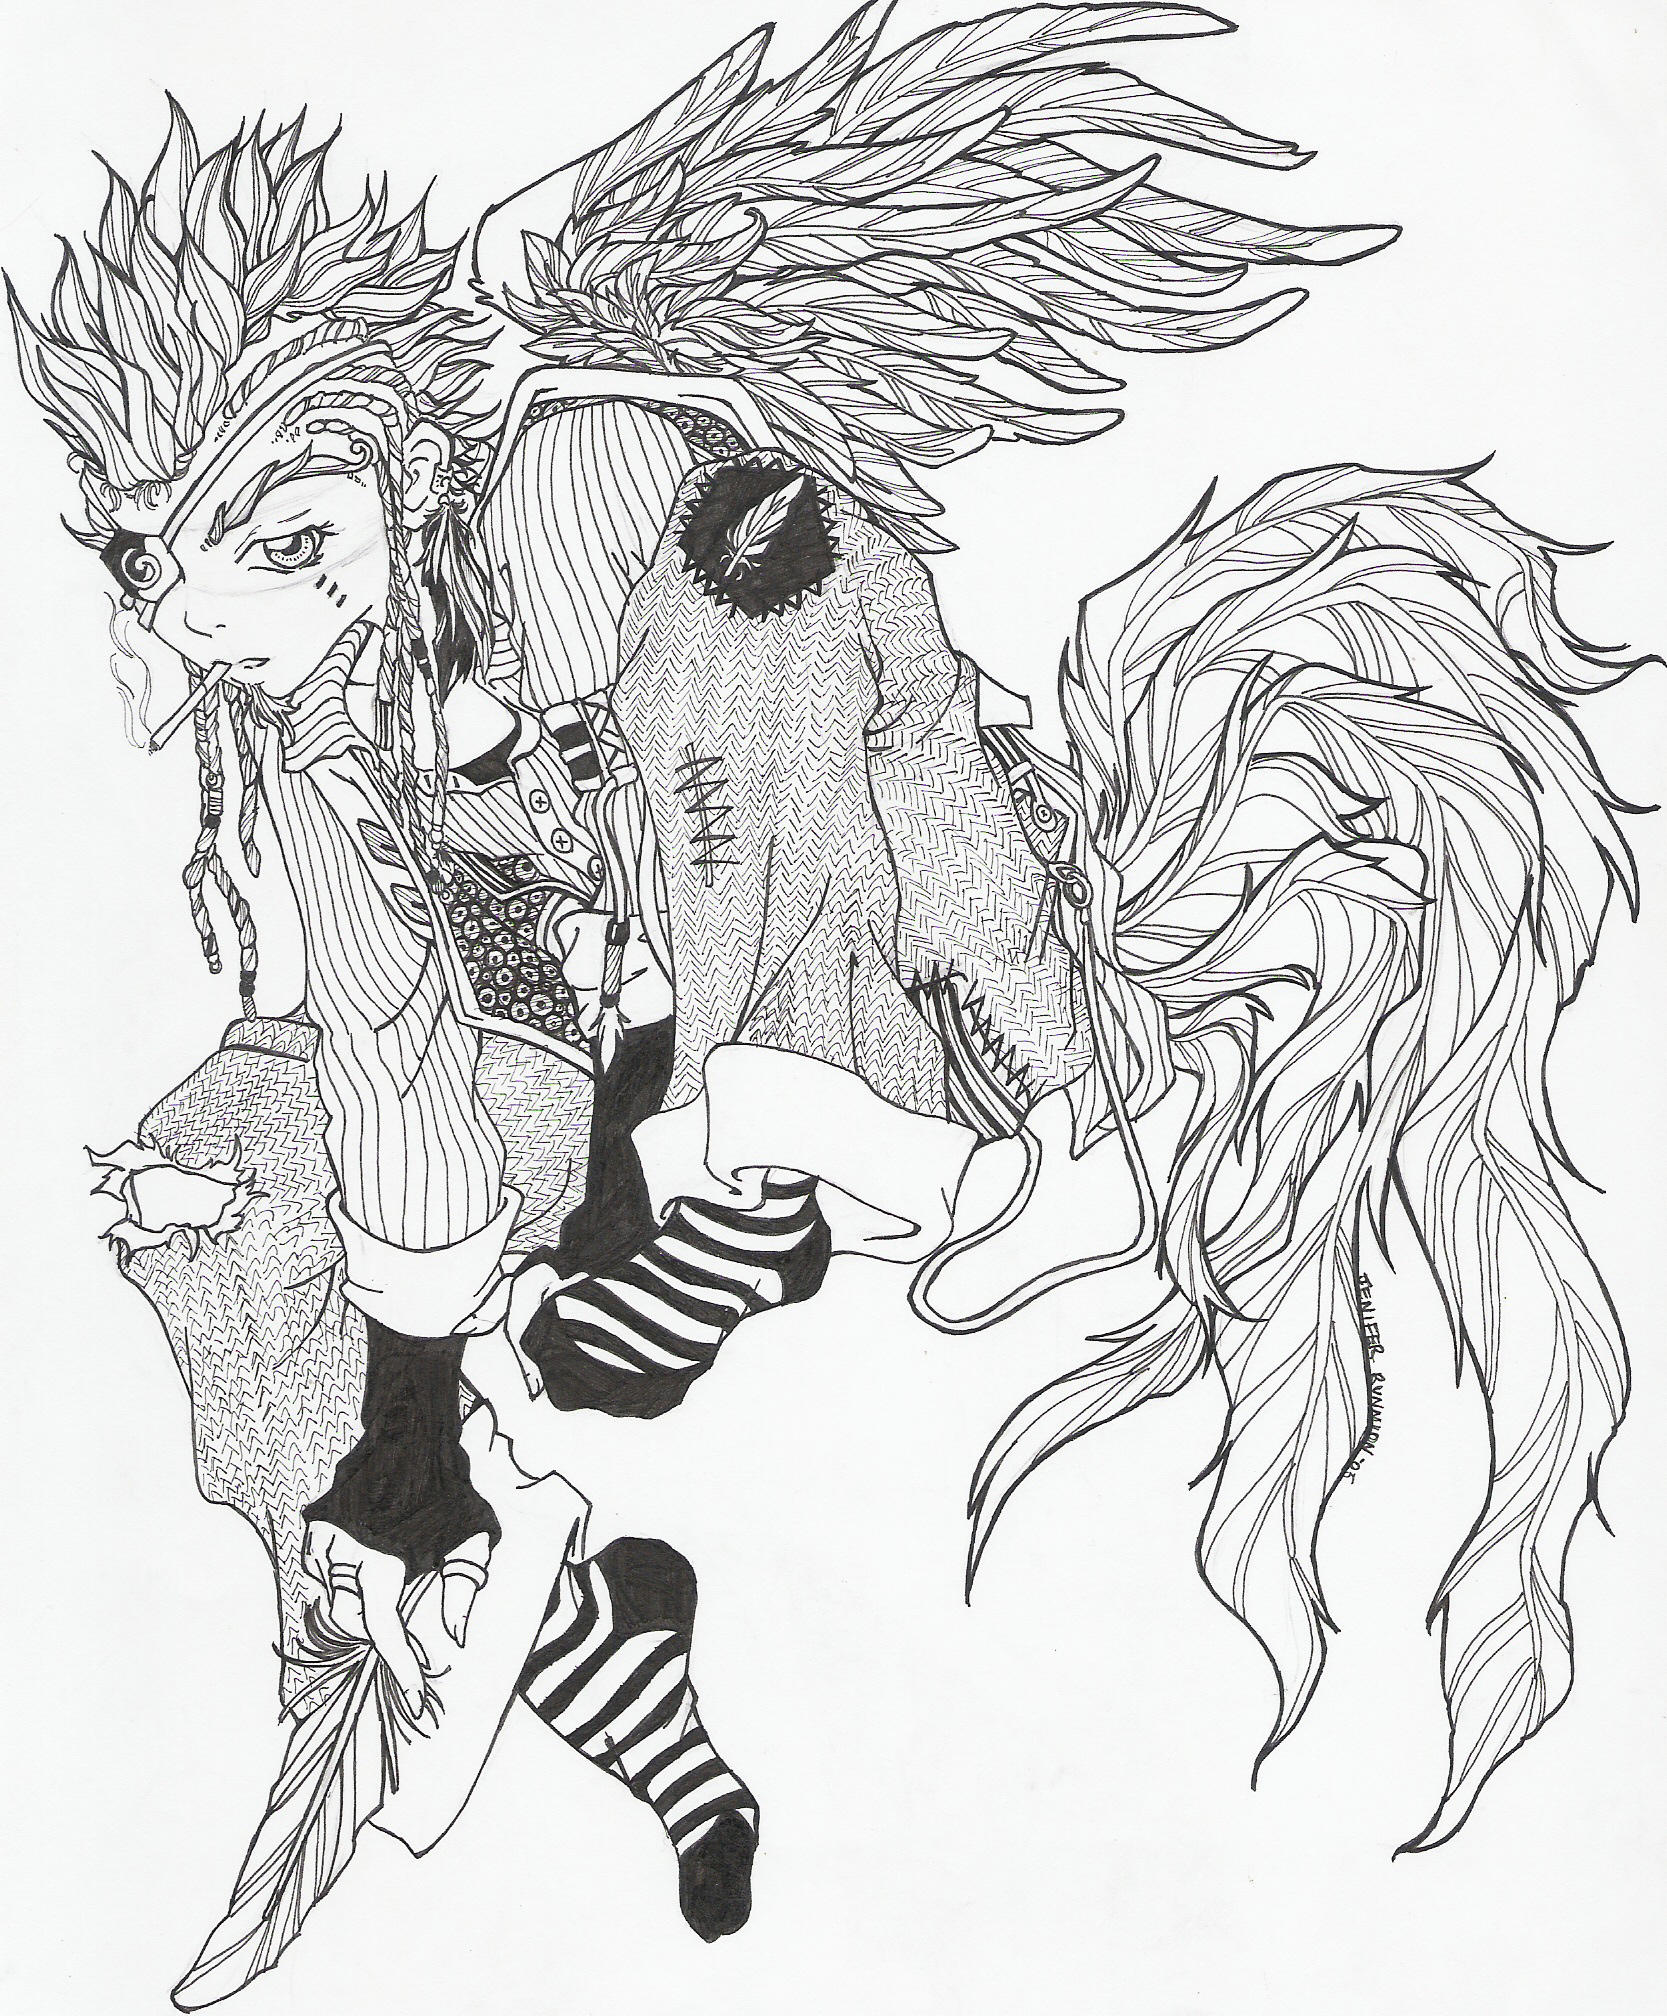 Chinese Zodiac Dragon Drawing The Rooster Chinese Zodiac by